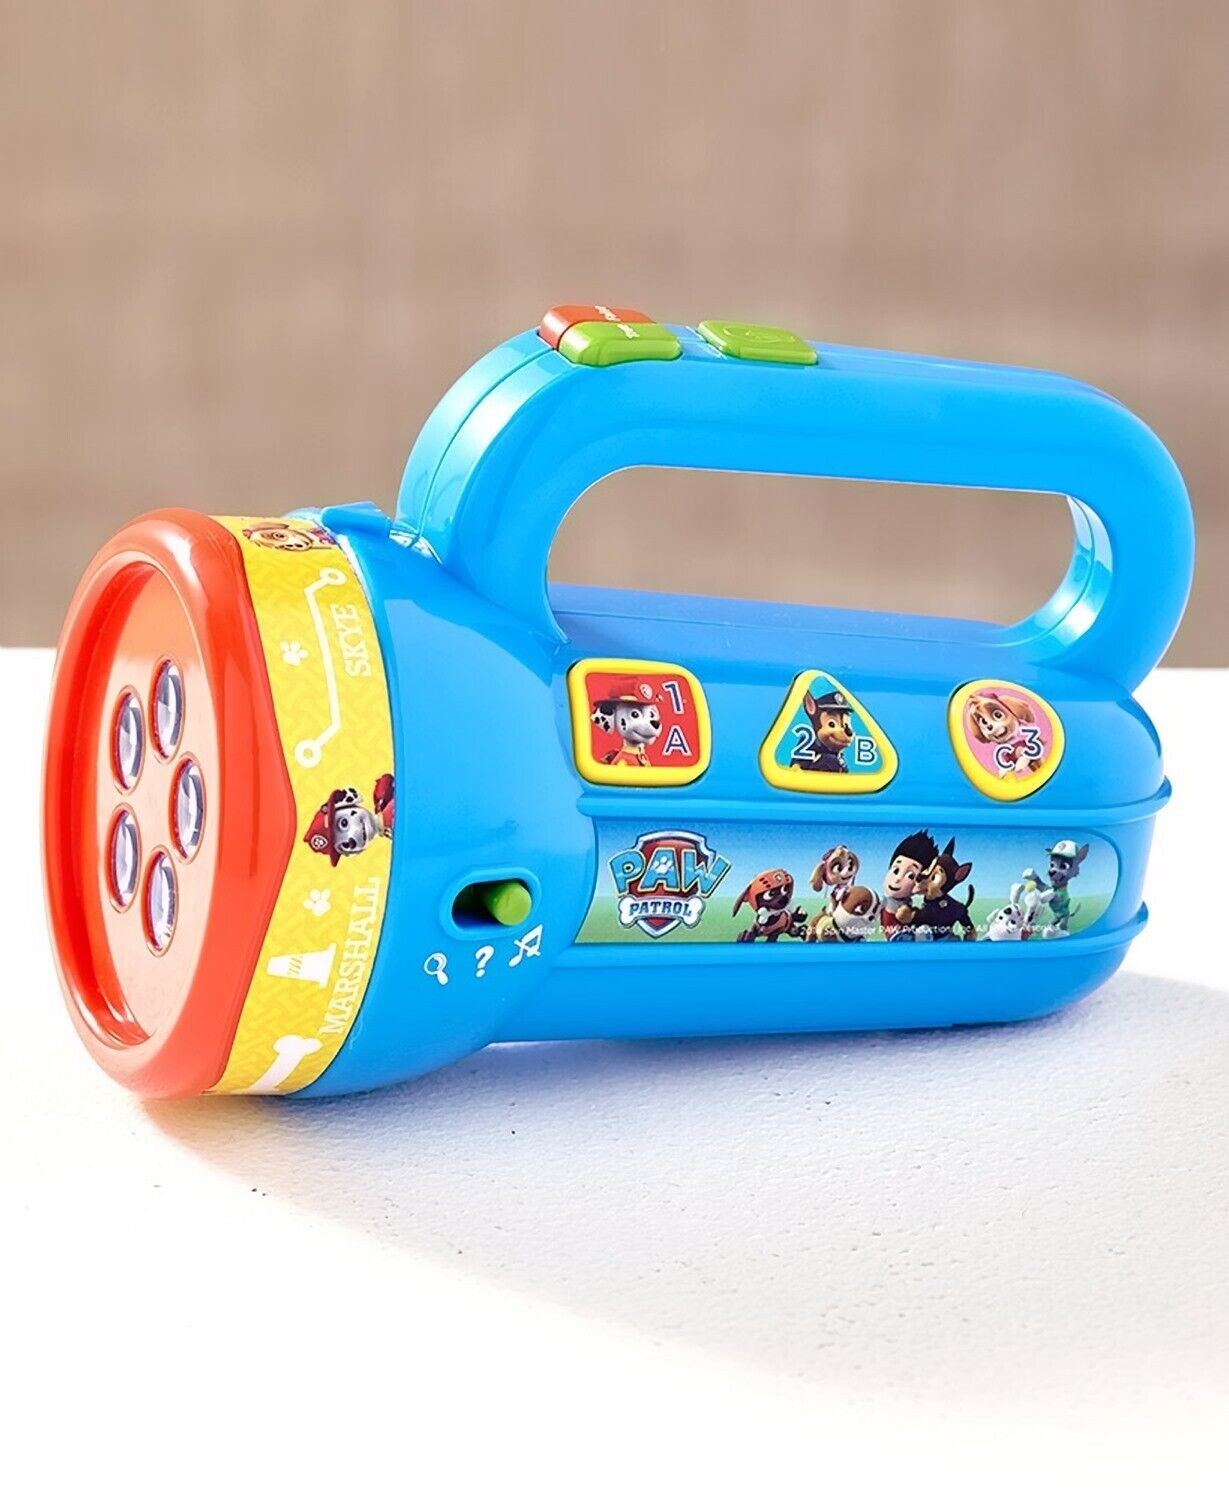 paw patrol fun and learn toy learning